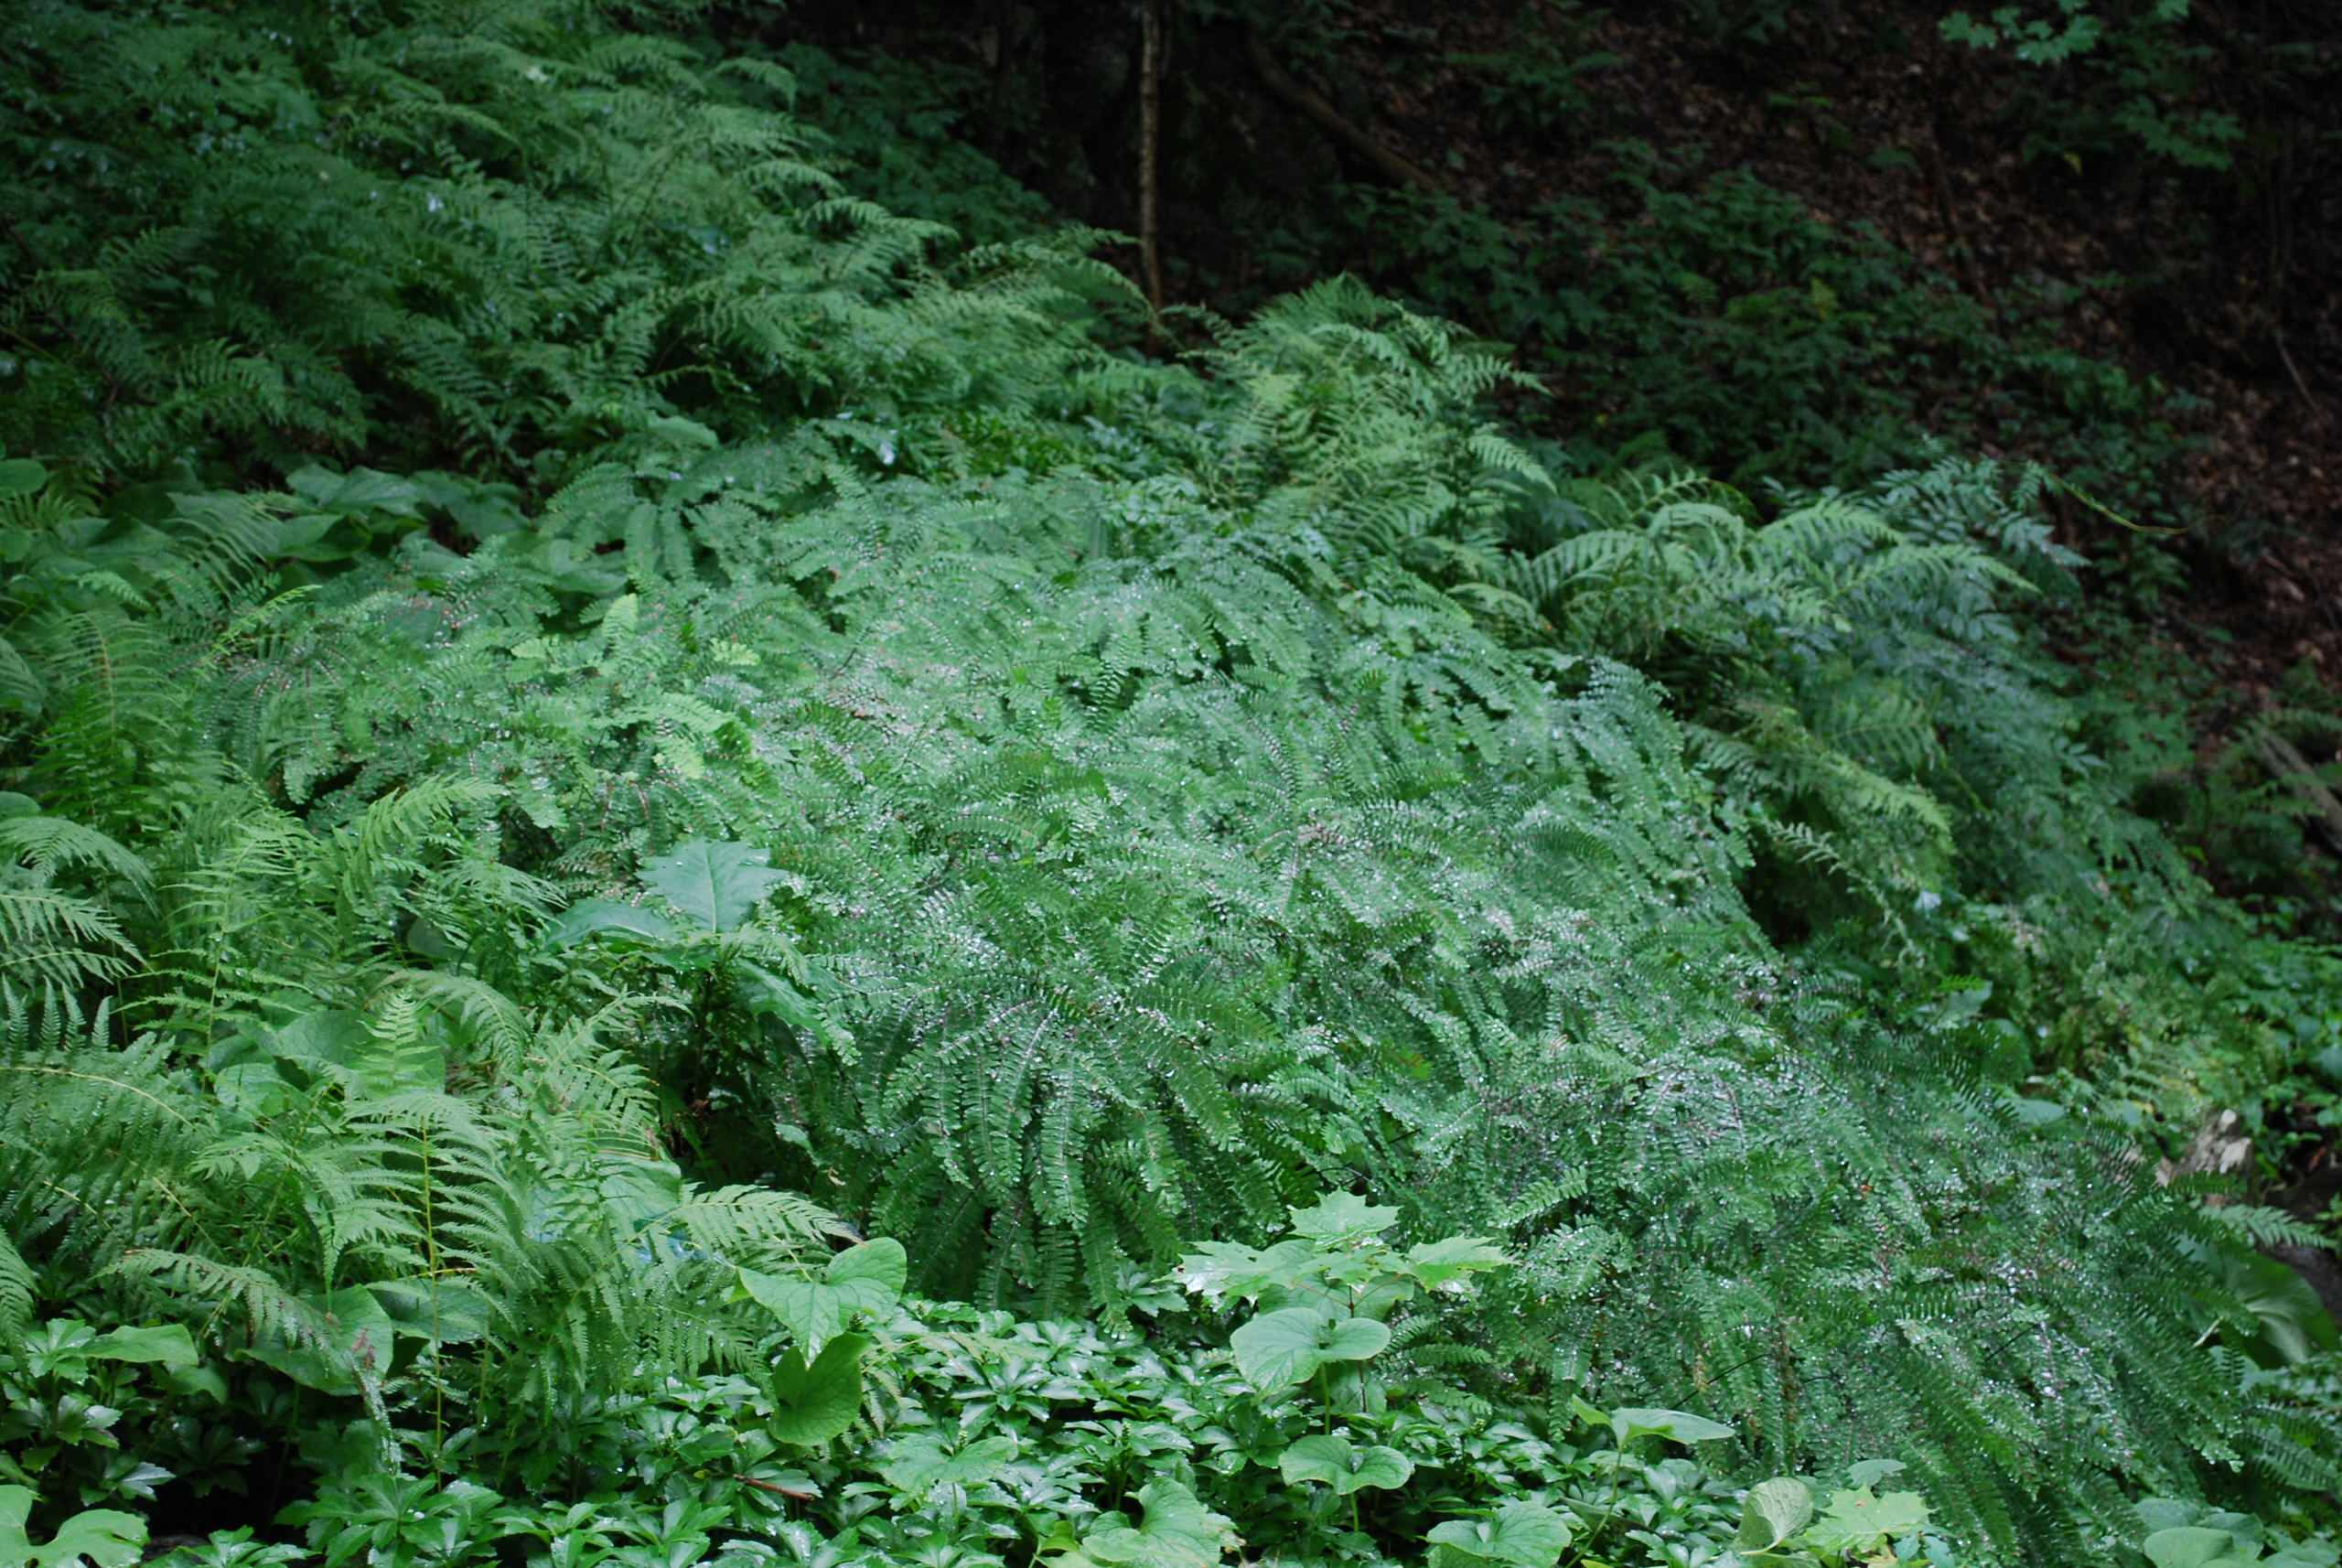 A fern garden at Innisfree